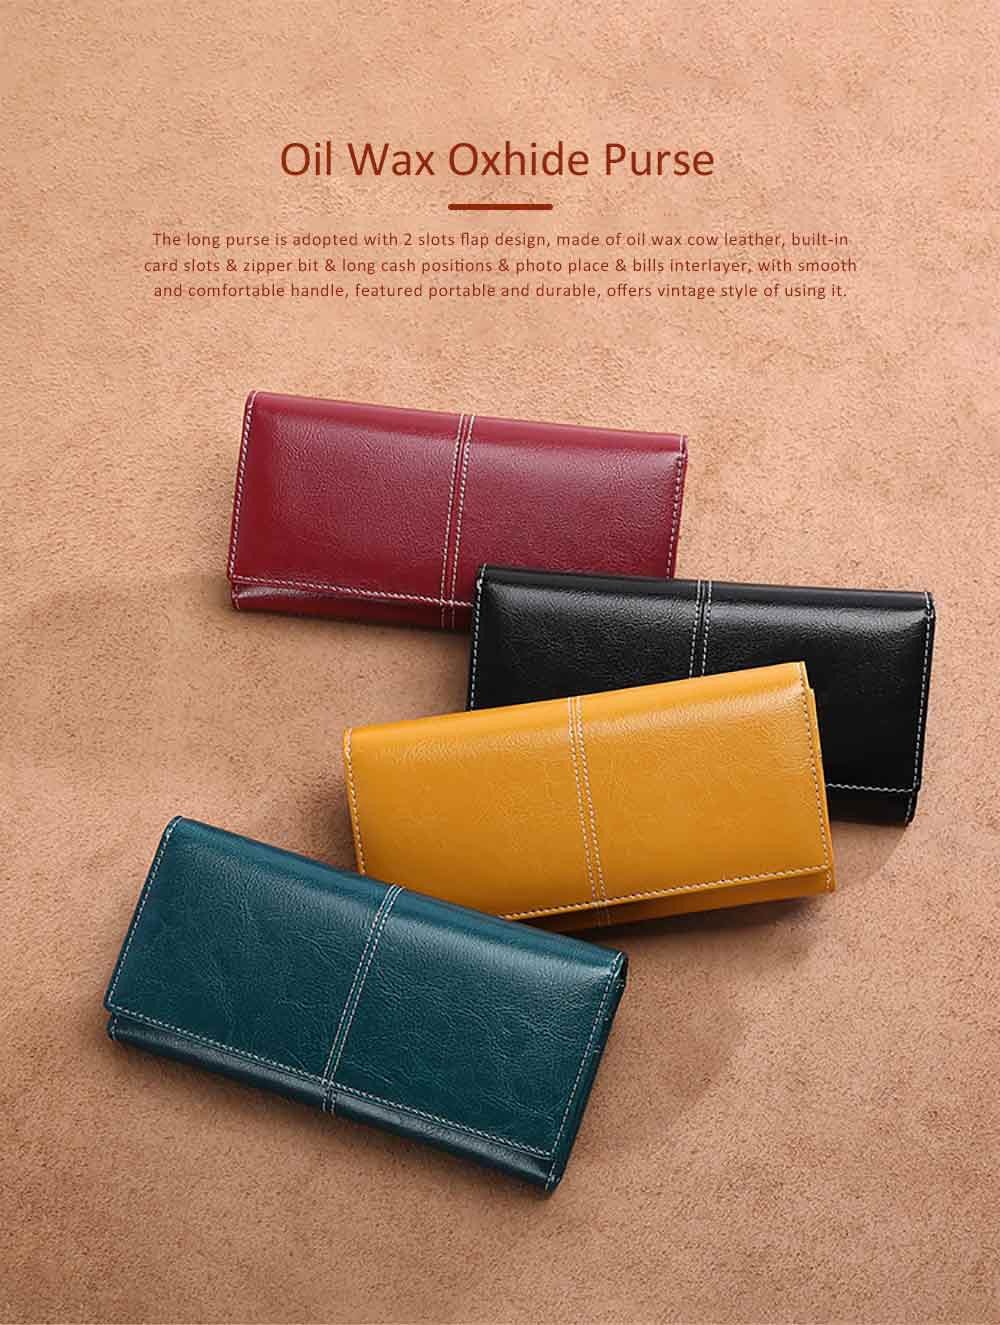 Oil Wax Oxhide Clutch with 2 Card Slots, Large Capacity Cow Leather Changes Purse, Casual Clutch Phone Holder Lady Bag 0